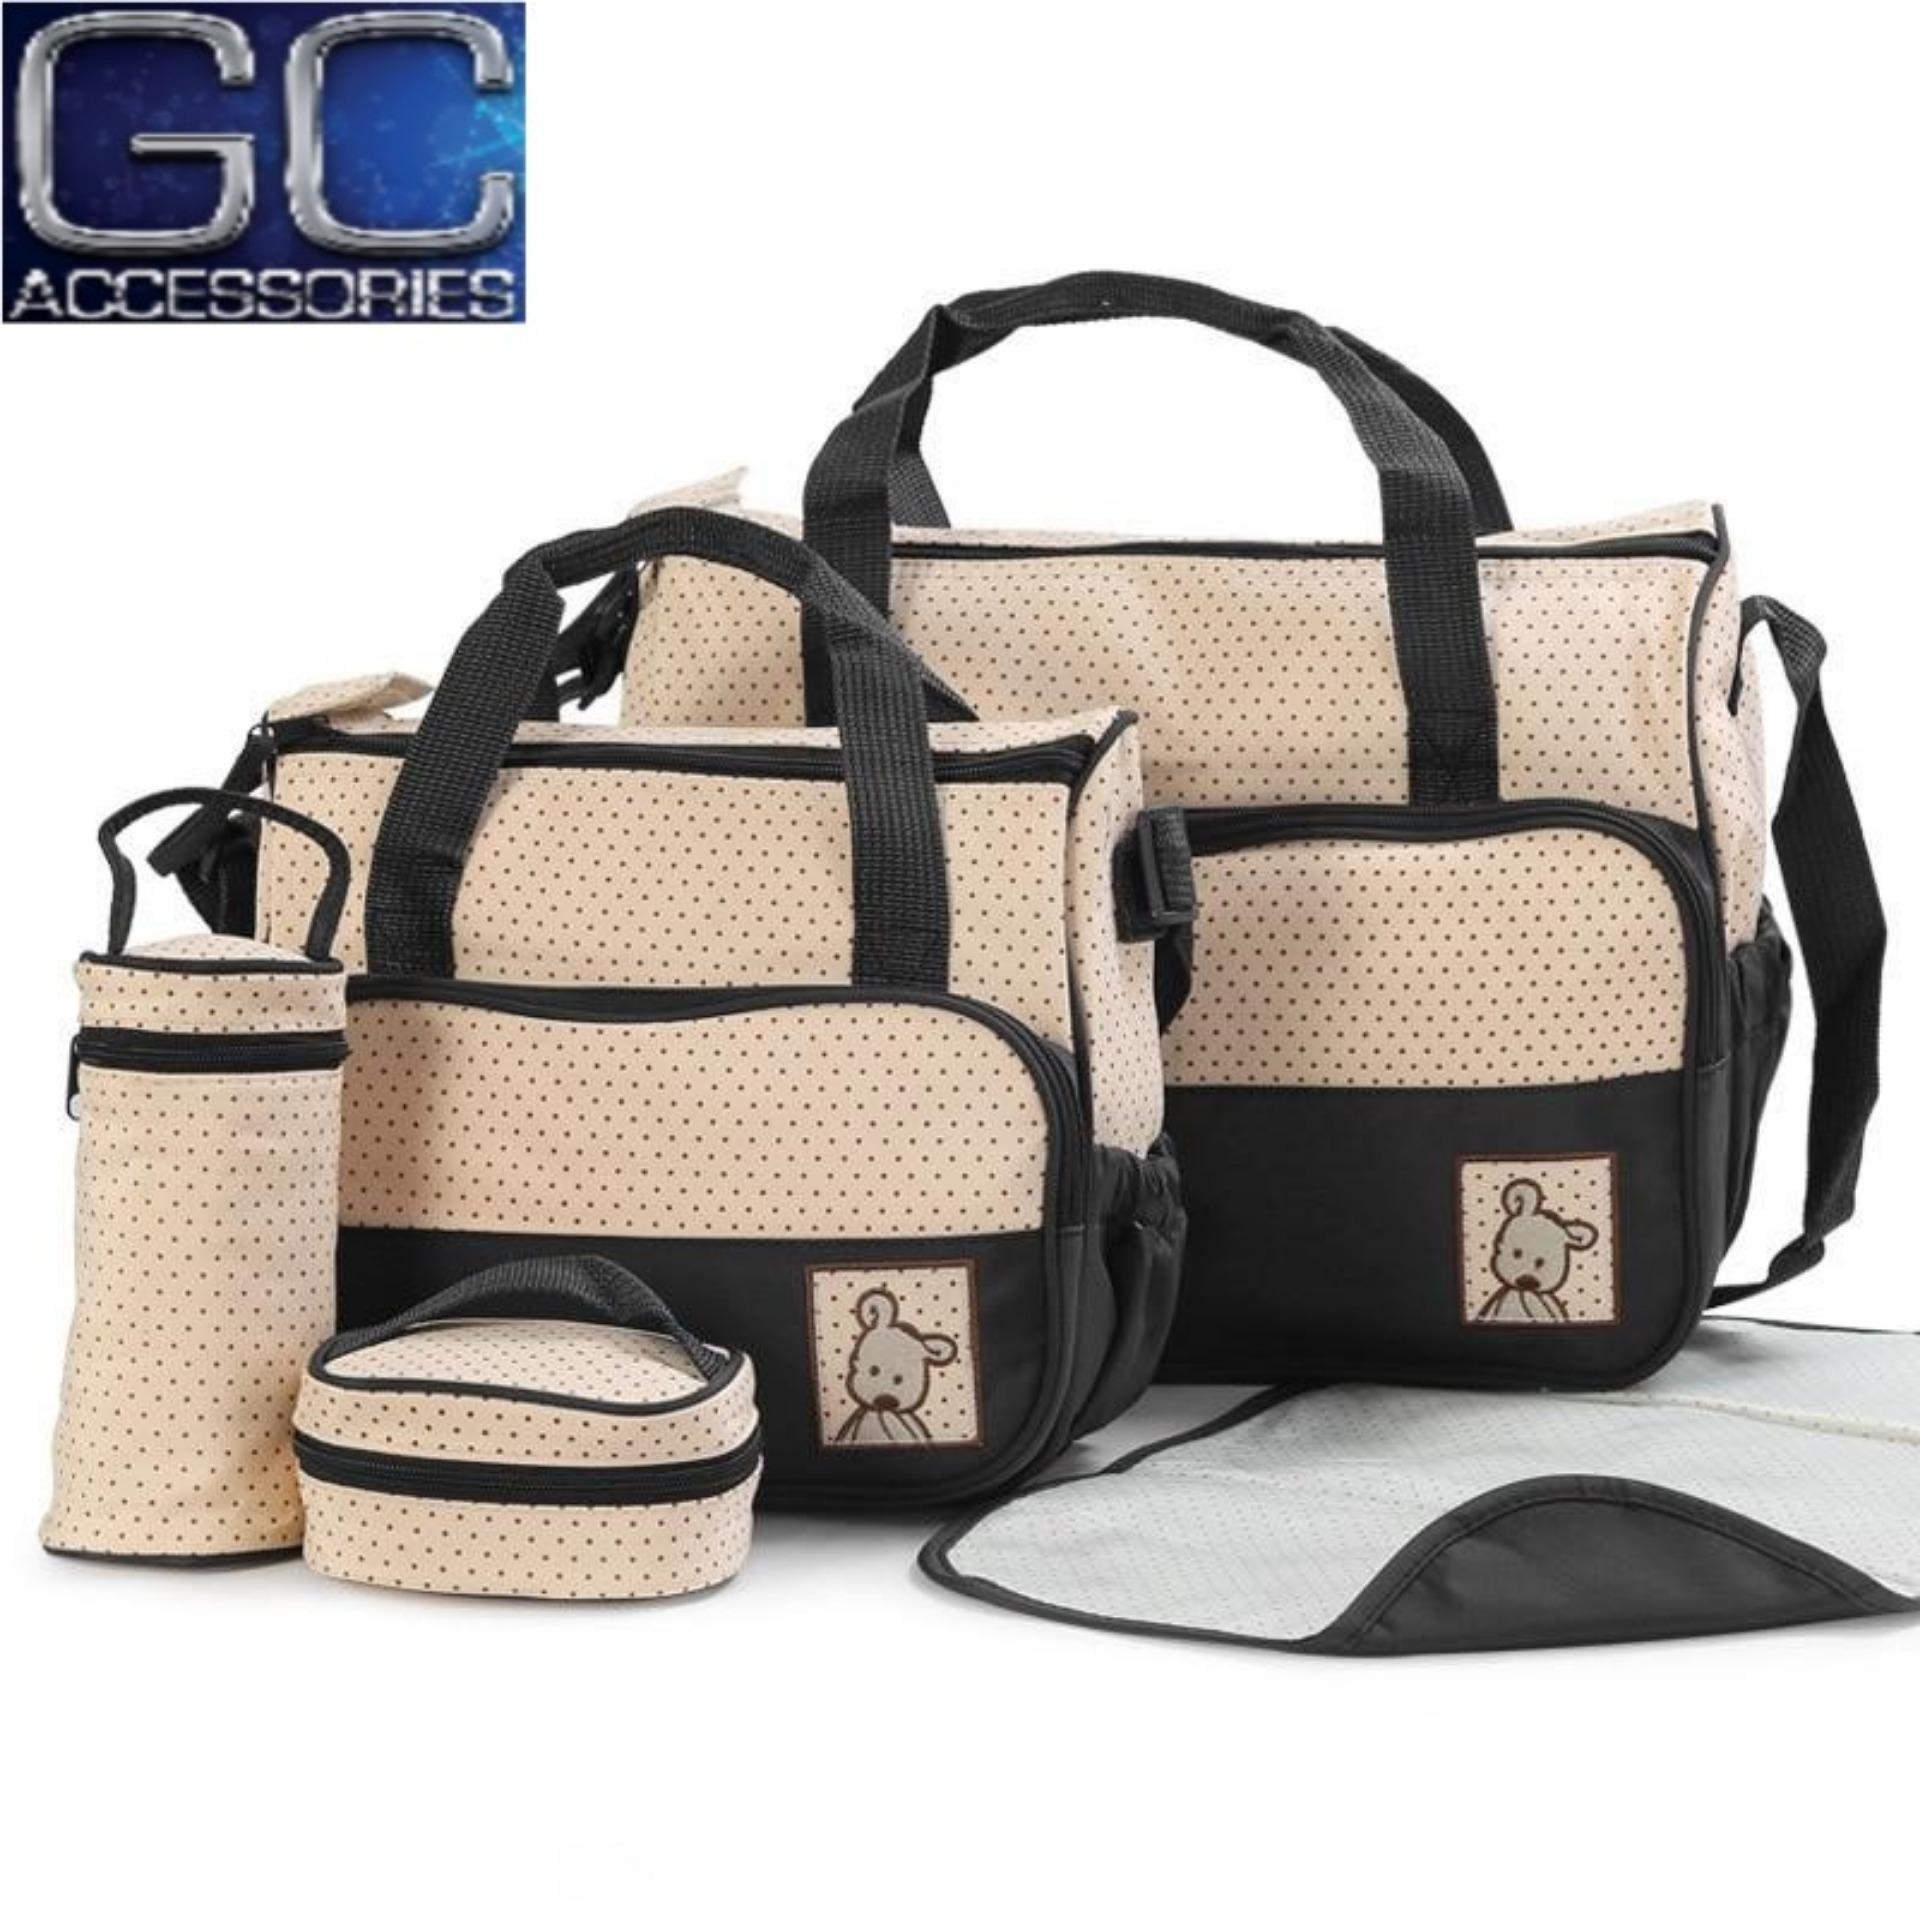 Baby Bags Online Baby Bags Olx